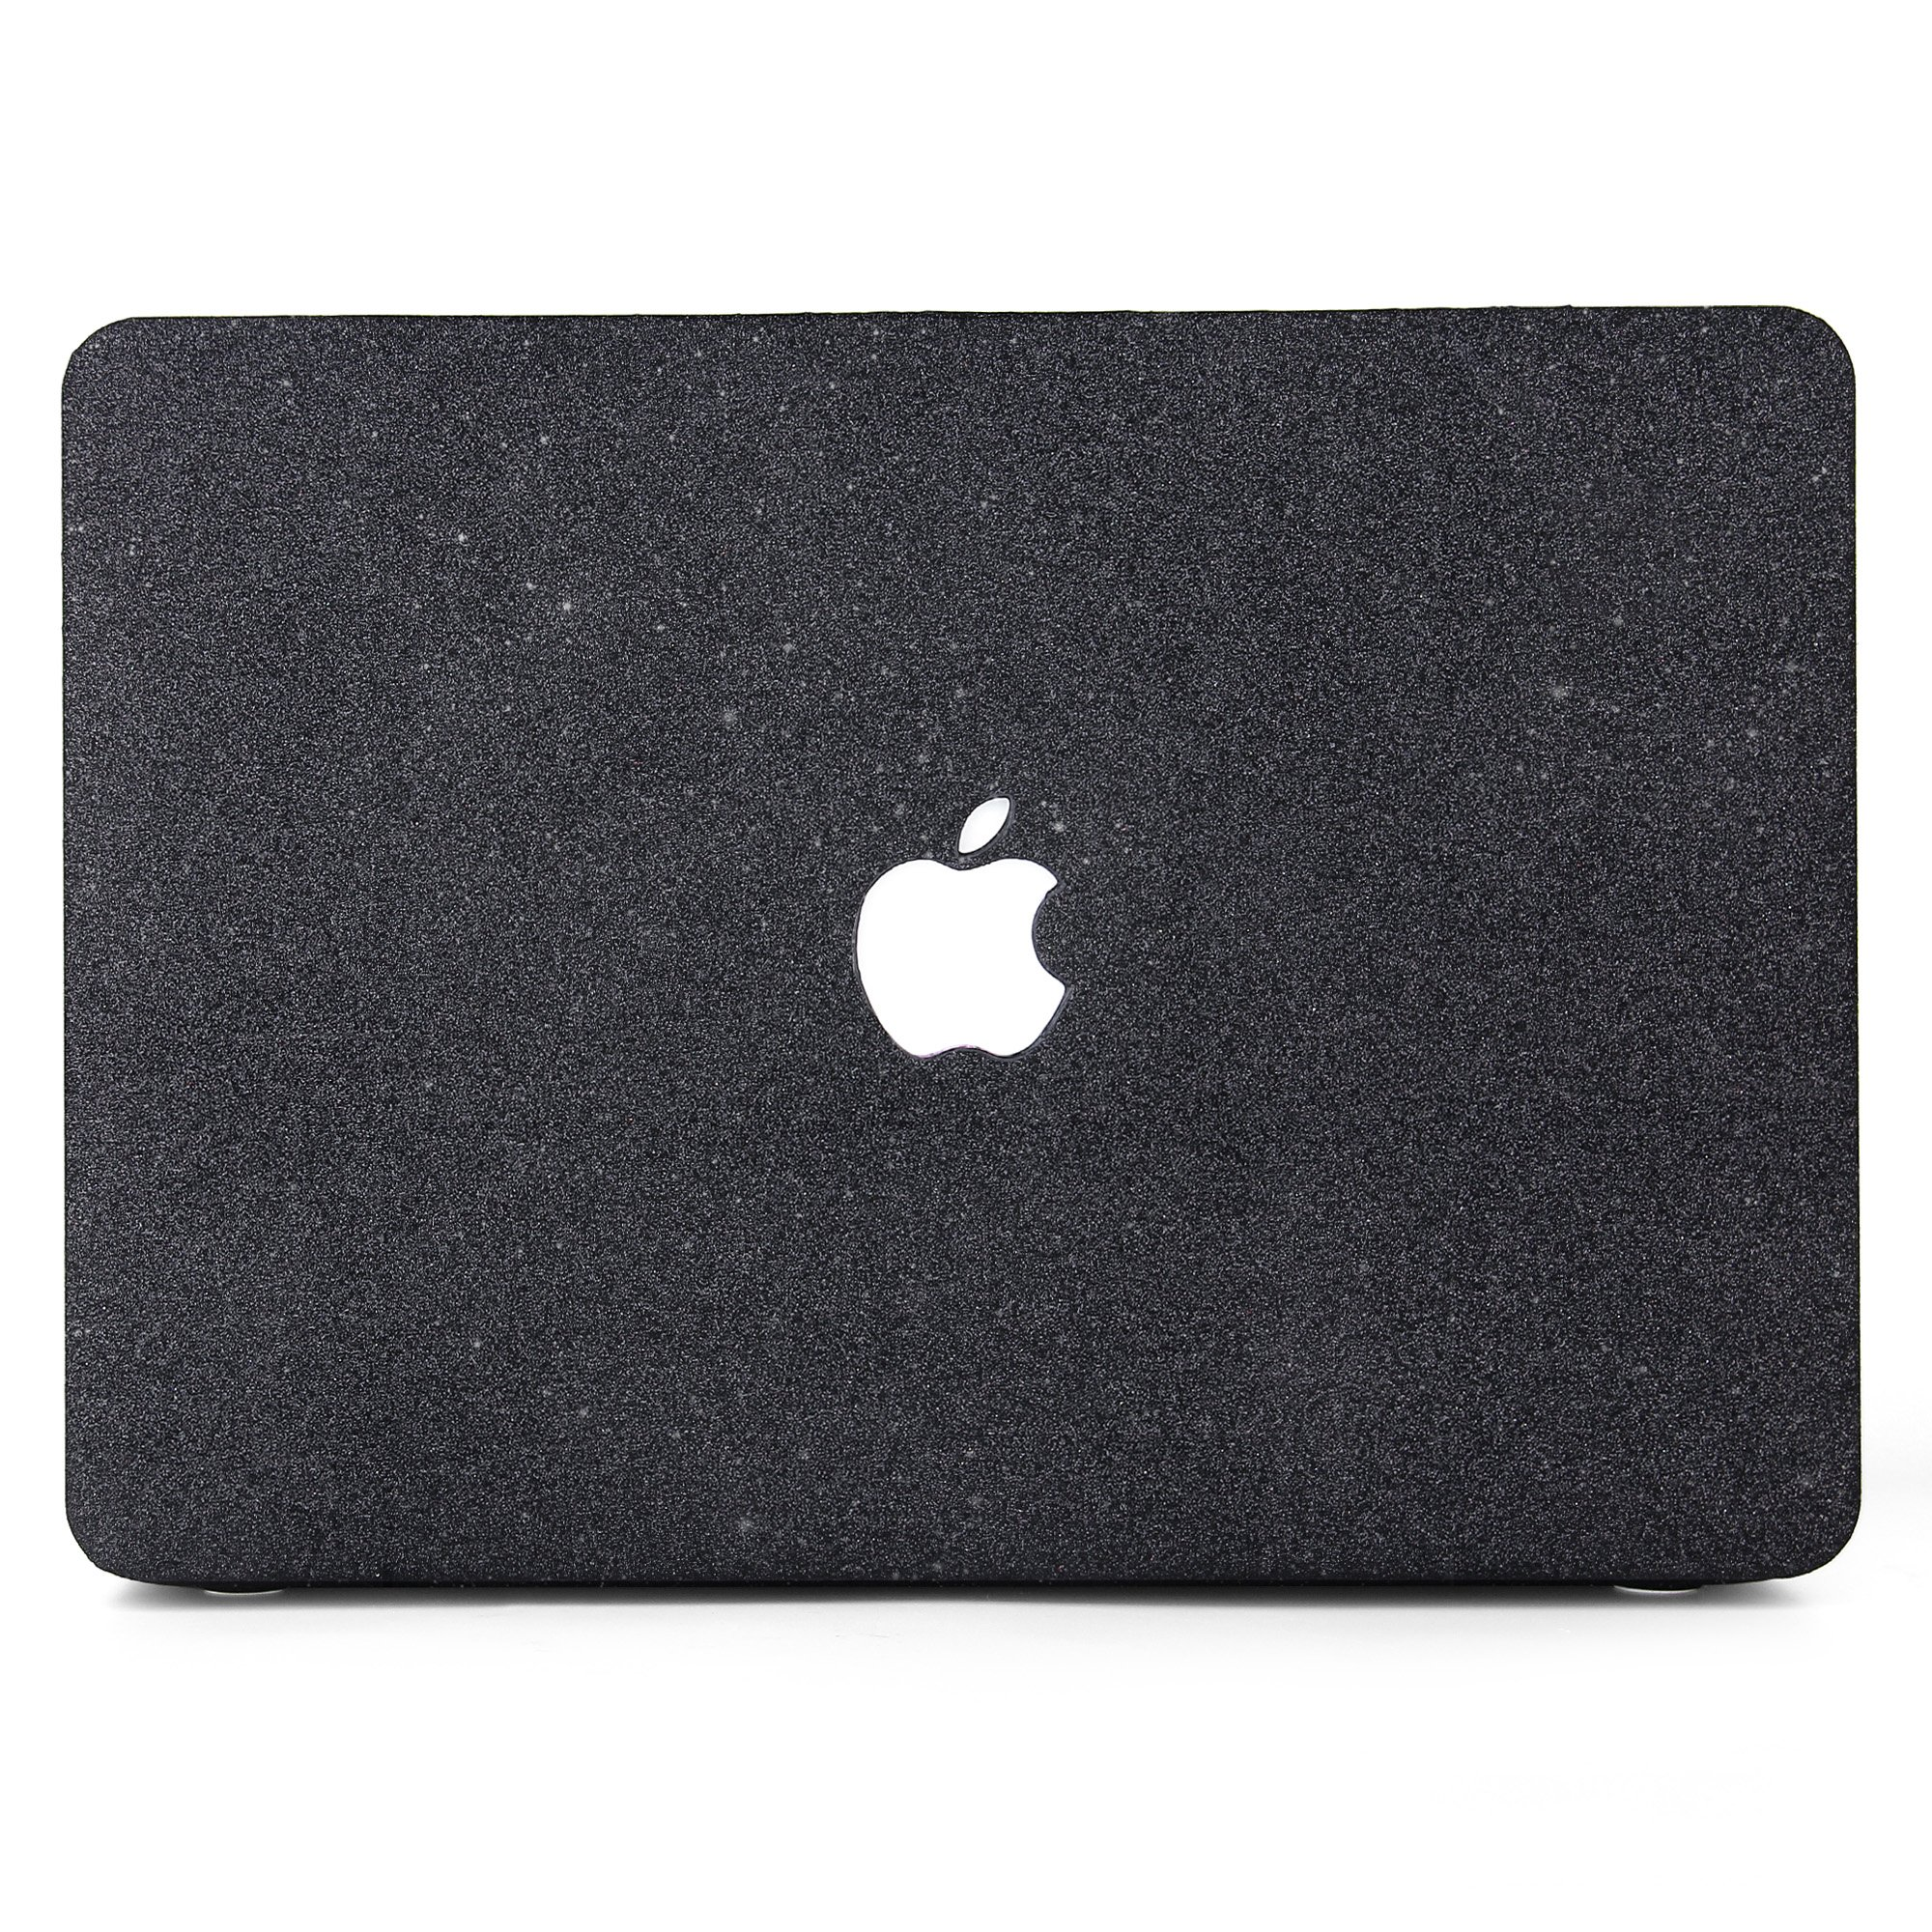 B BELK-New MacBook Pro 13''(2016 Release) Case,2 In 1 Matte Glitter Bling Texture Ultra-Slim Light Weight PC Hard Case With Keyboard Cover For MacBook Pro 13.3'' With Touch Bar (A1706) - Black